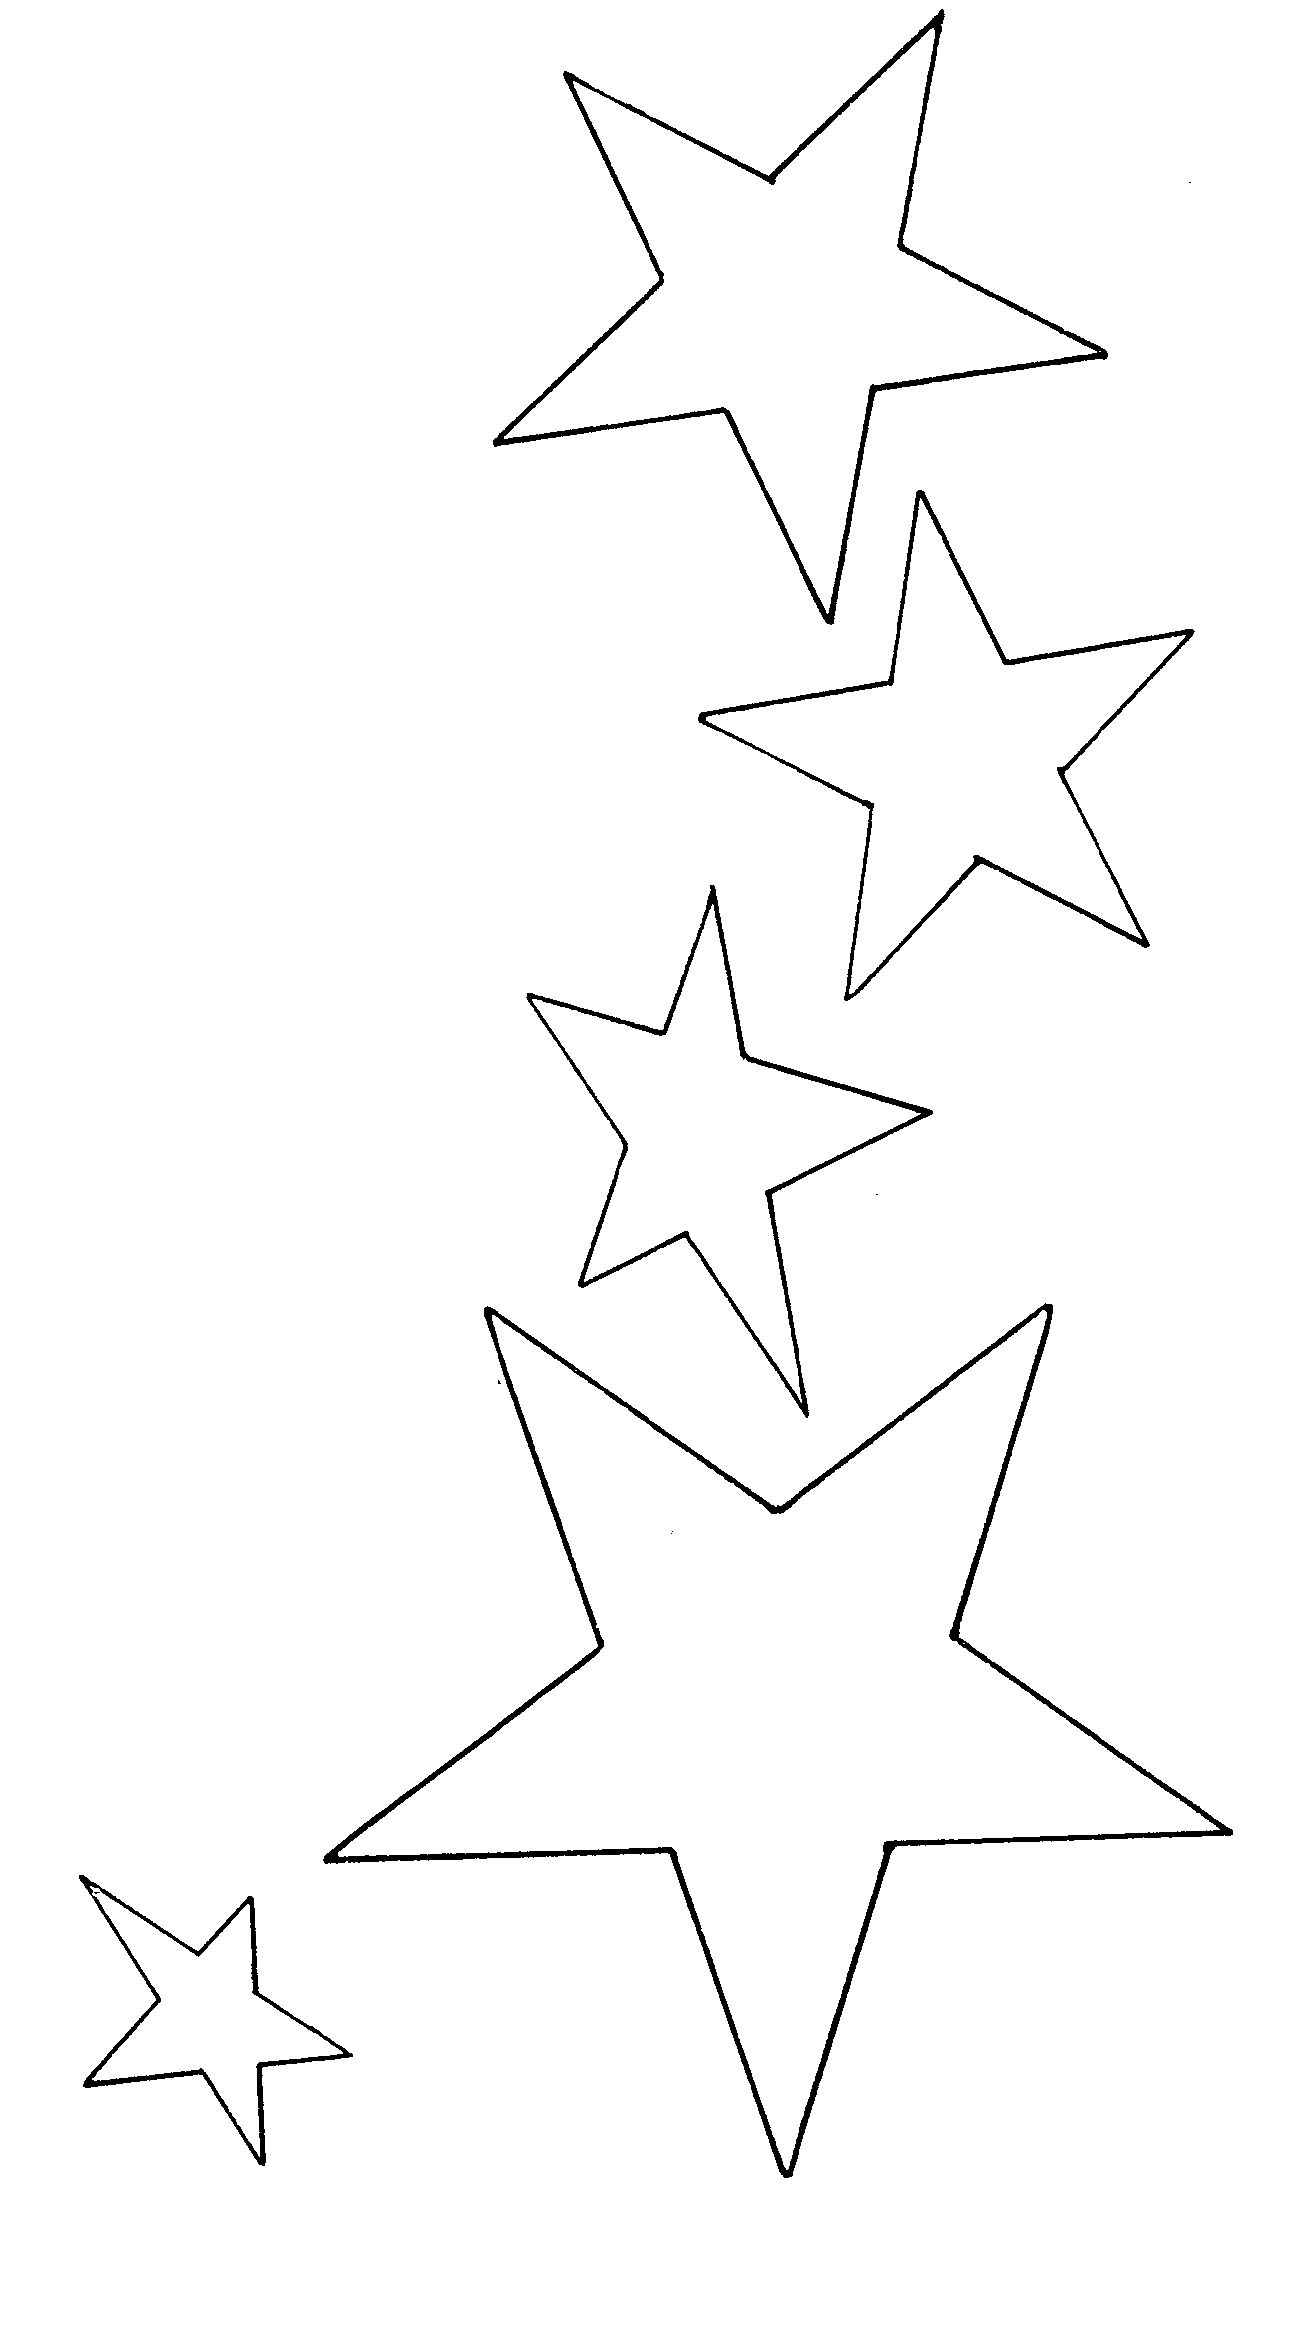 Cute star clipart groovy black and white freeuse download Star black and white shooting star clipart black and white ... freeuse download